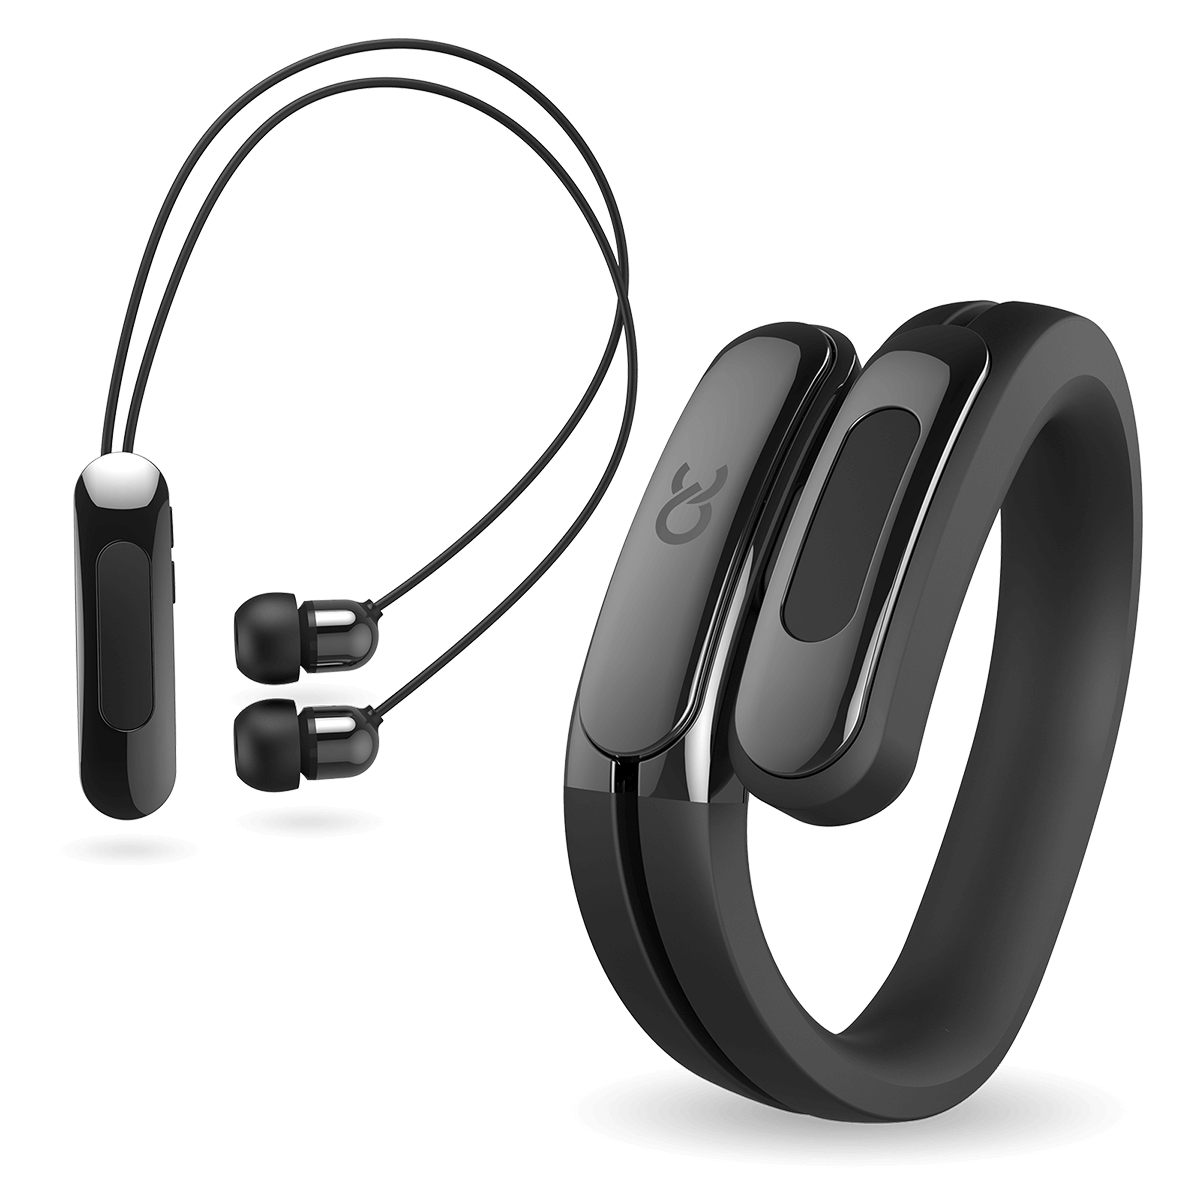 Helix-Cuff-Store-Hero-Black-Black.png